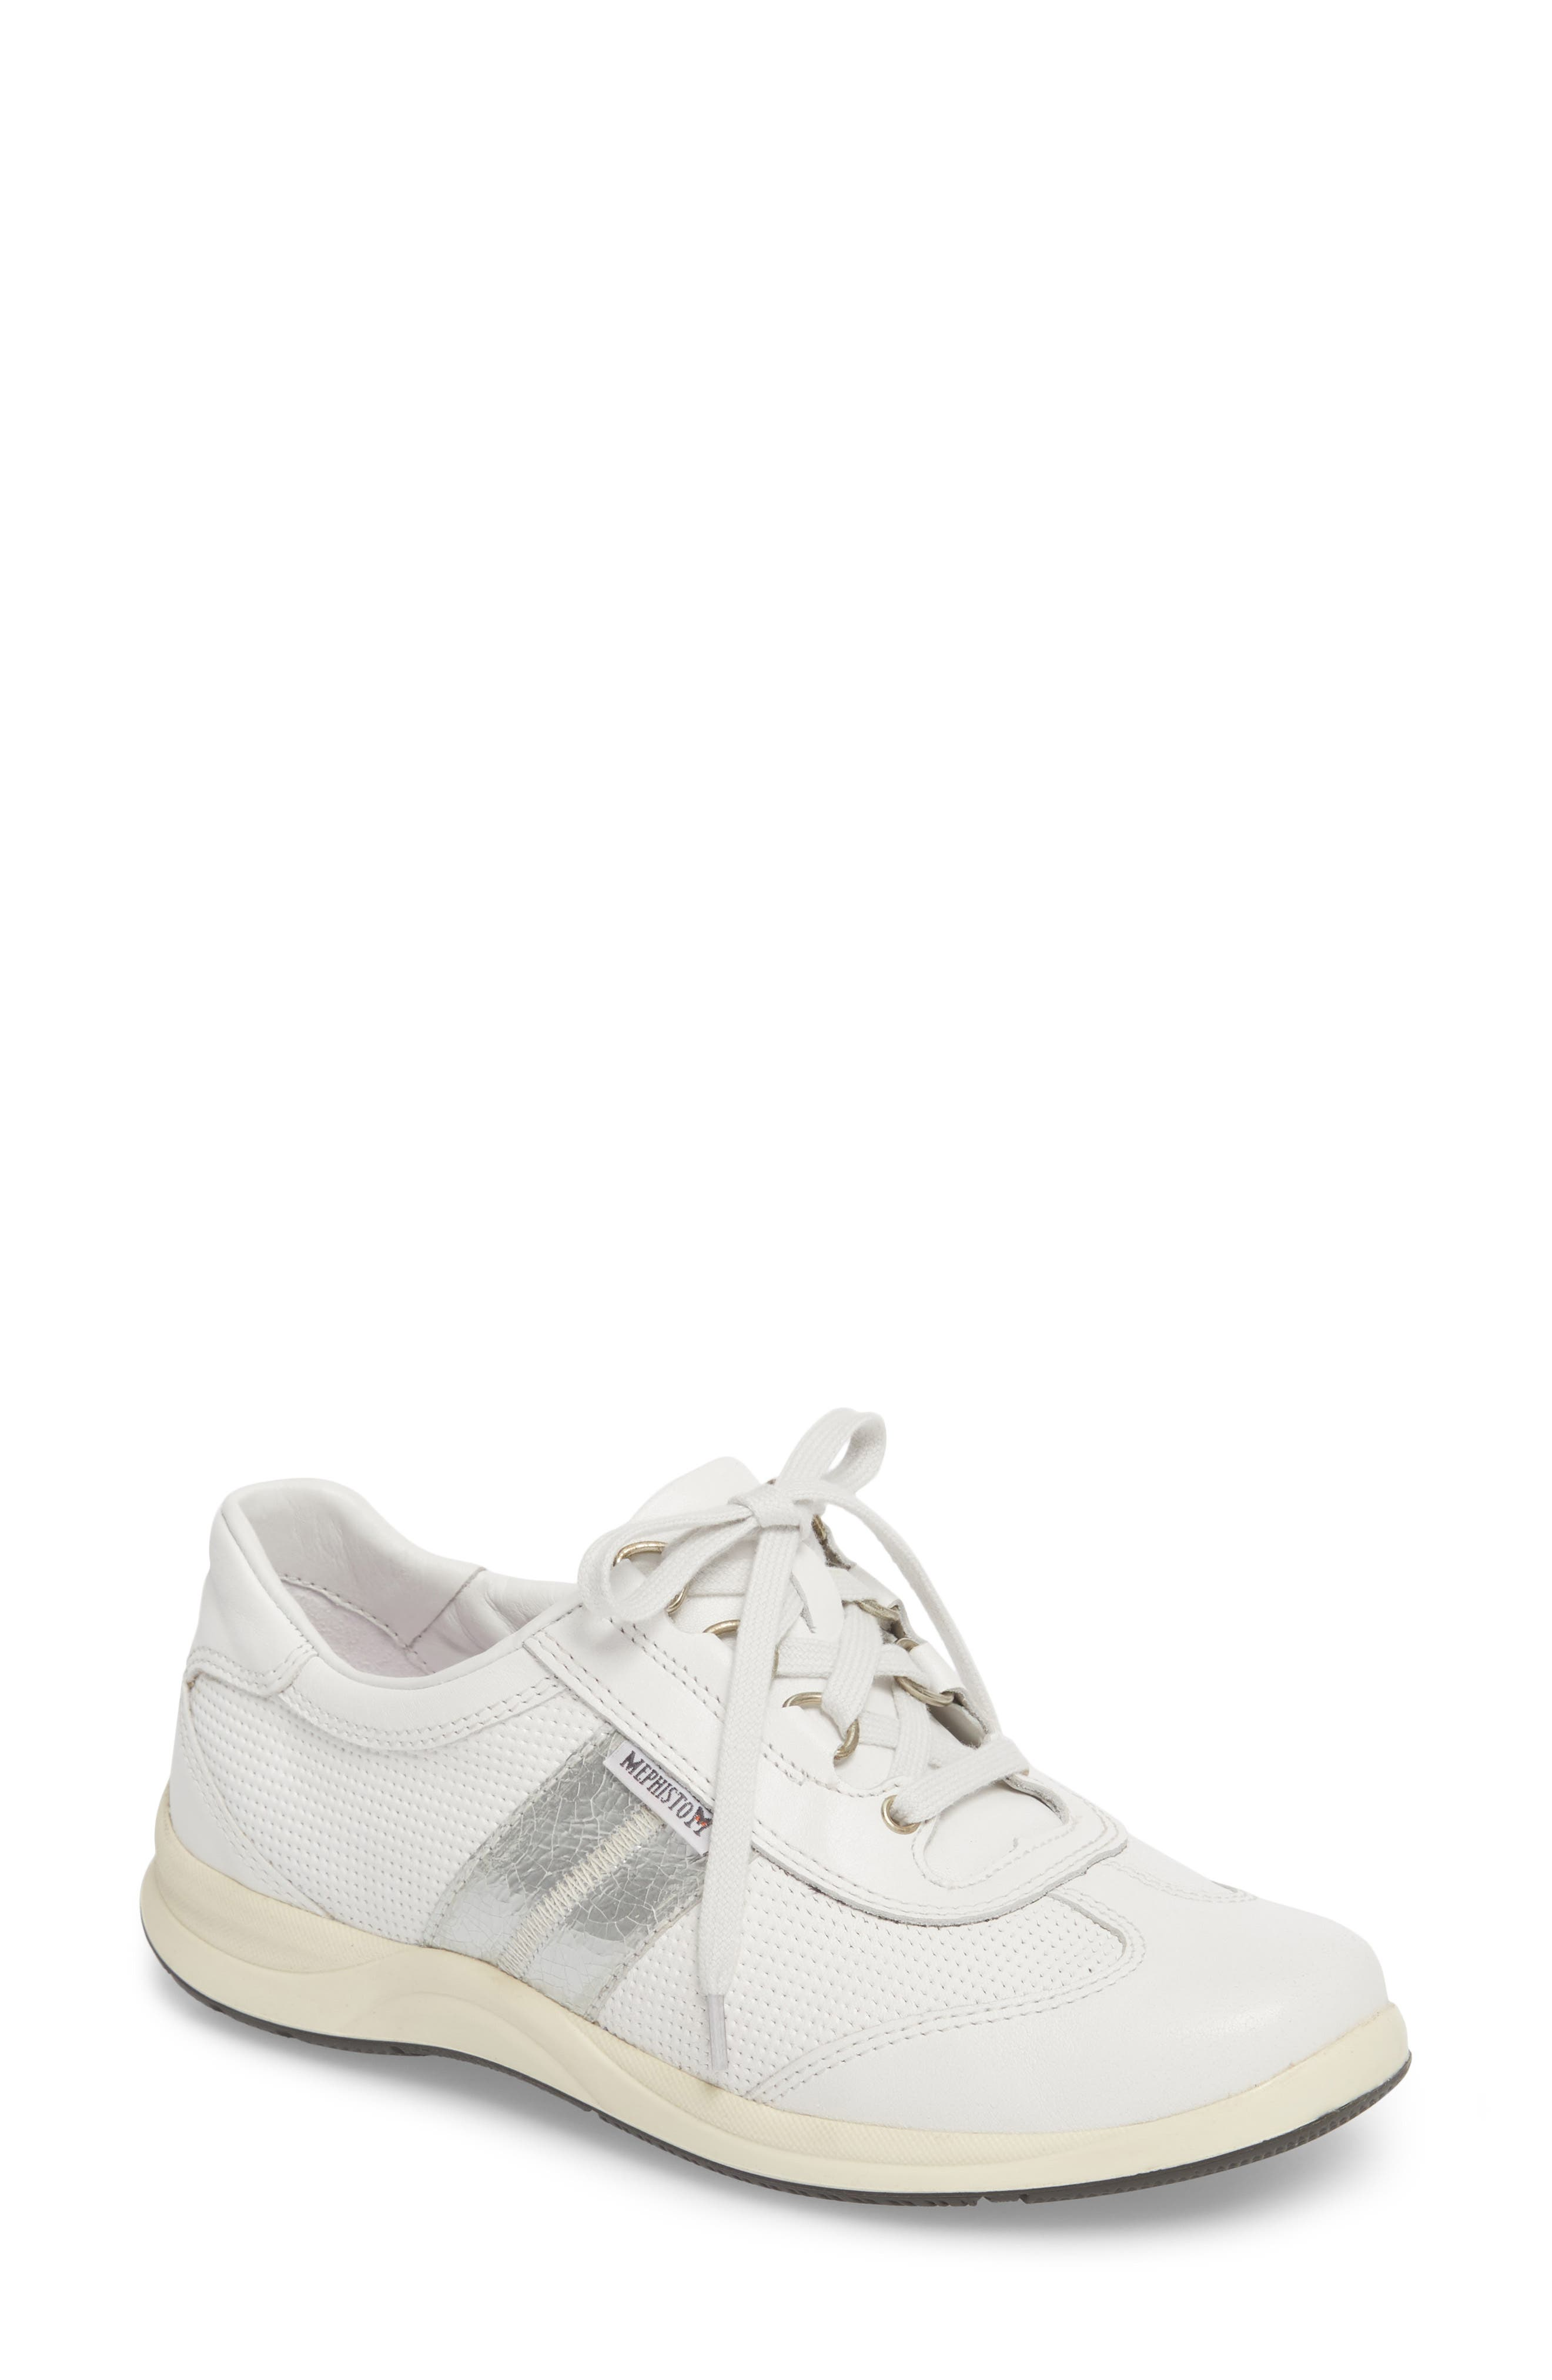 Laser Perforated Walking Shoe,                             Main thumbnail 1, color,                             White Fabric